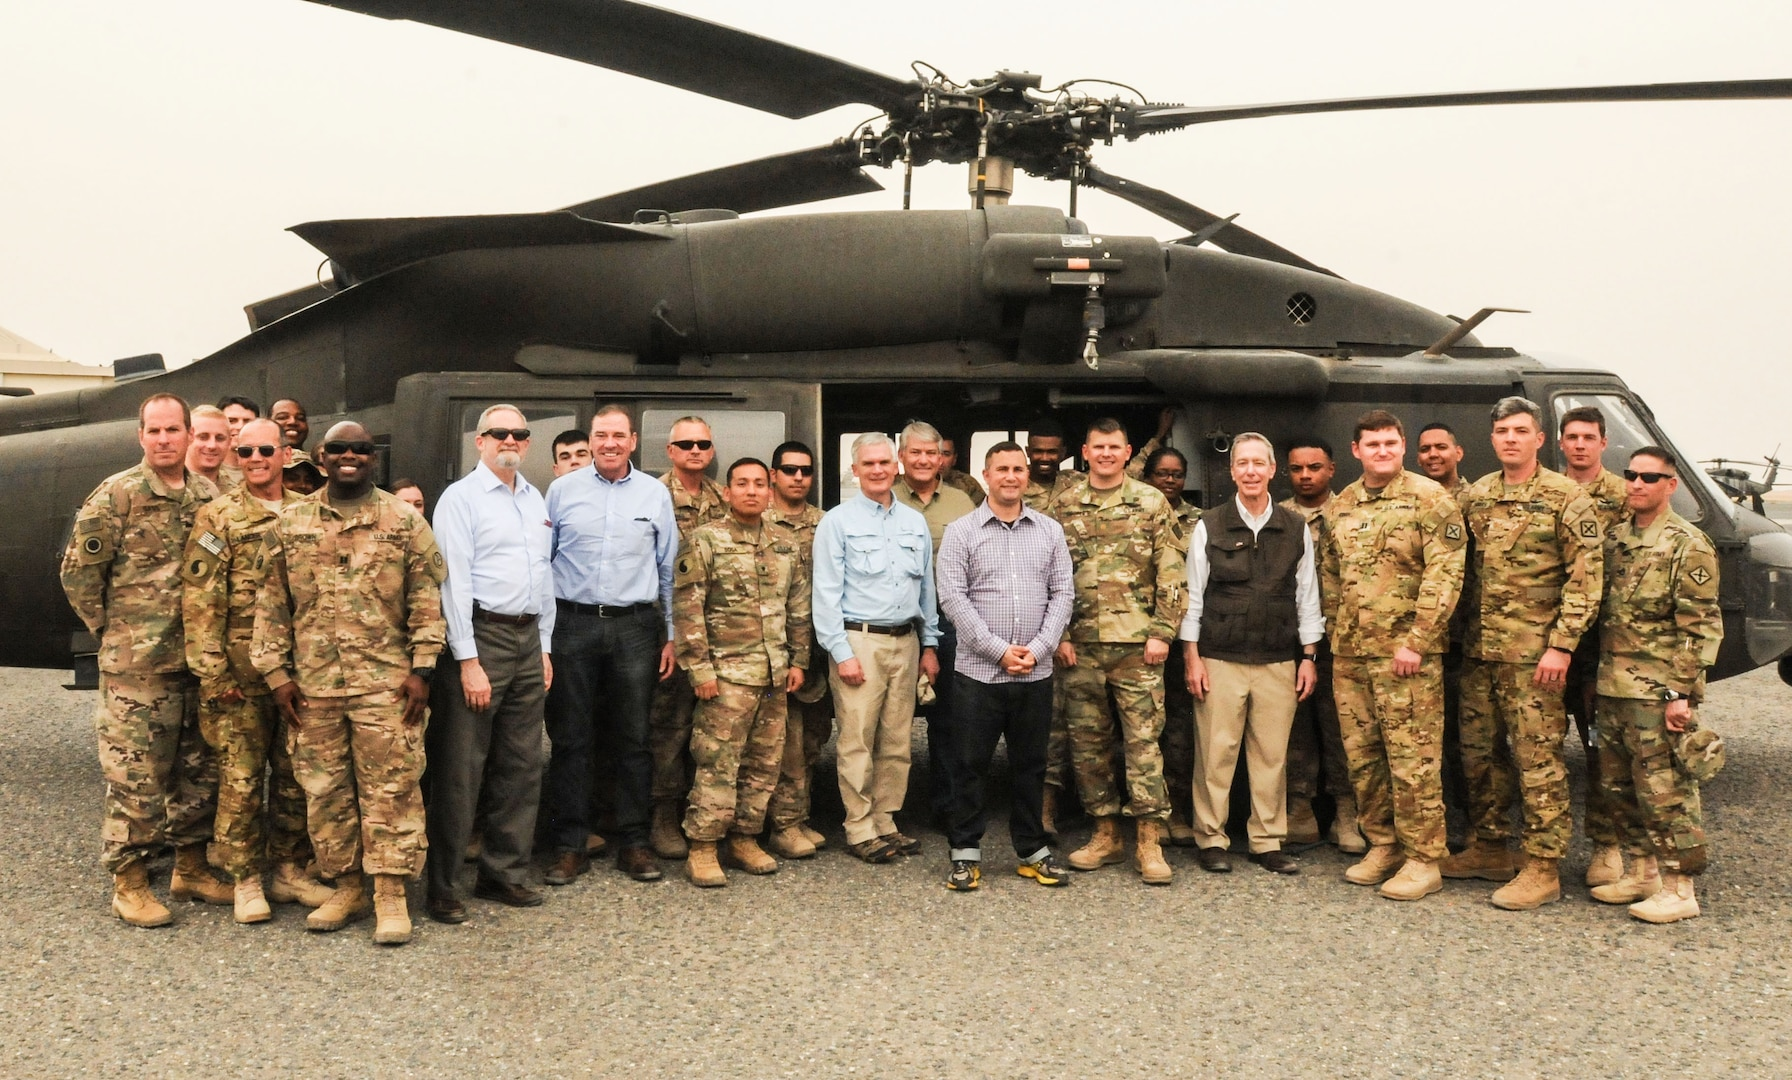 Congressmen from three states visited Soldiers from their congressional districts to learn about the ongoing fight against ISIS. Brig. Gen. John Epperly, the Deputy Commander of the 29th Infantry Division, Task Force Spartan, escorted the delegation as they received a briefing on Operations Spartan Shield and Inherent Resolve. The U.S. Ambassador to Kuwait, Mr. Lawrence Silverman, also participated in the day's events. The representatives visited Camp Arifjan and Camp Buerhing, Kuwait on April 10, 2017. (U.S. Army Photo by Master Sergeant Sean McCollum, 29th Infantry Division Public Affairs)